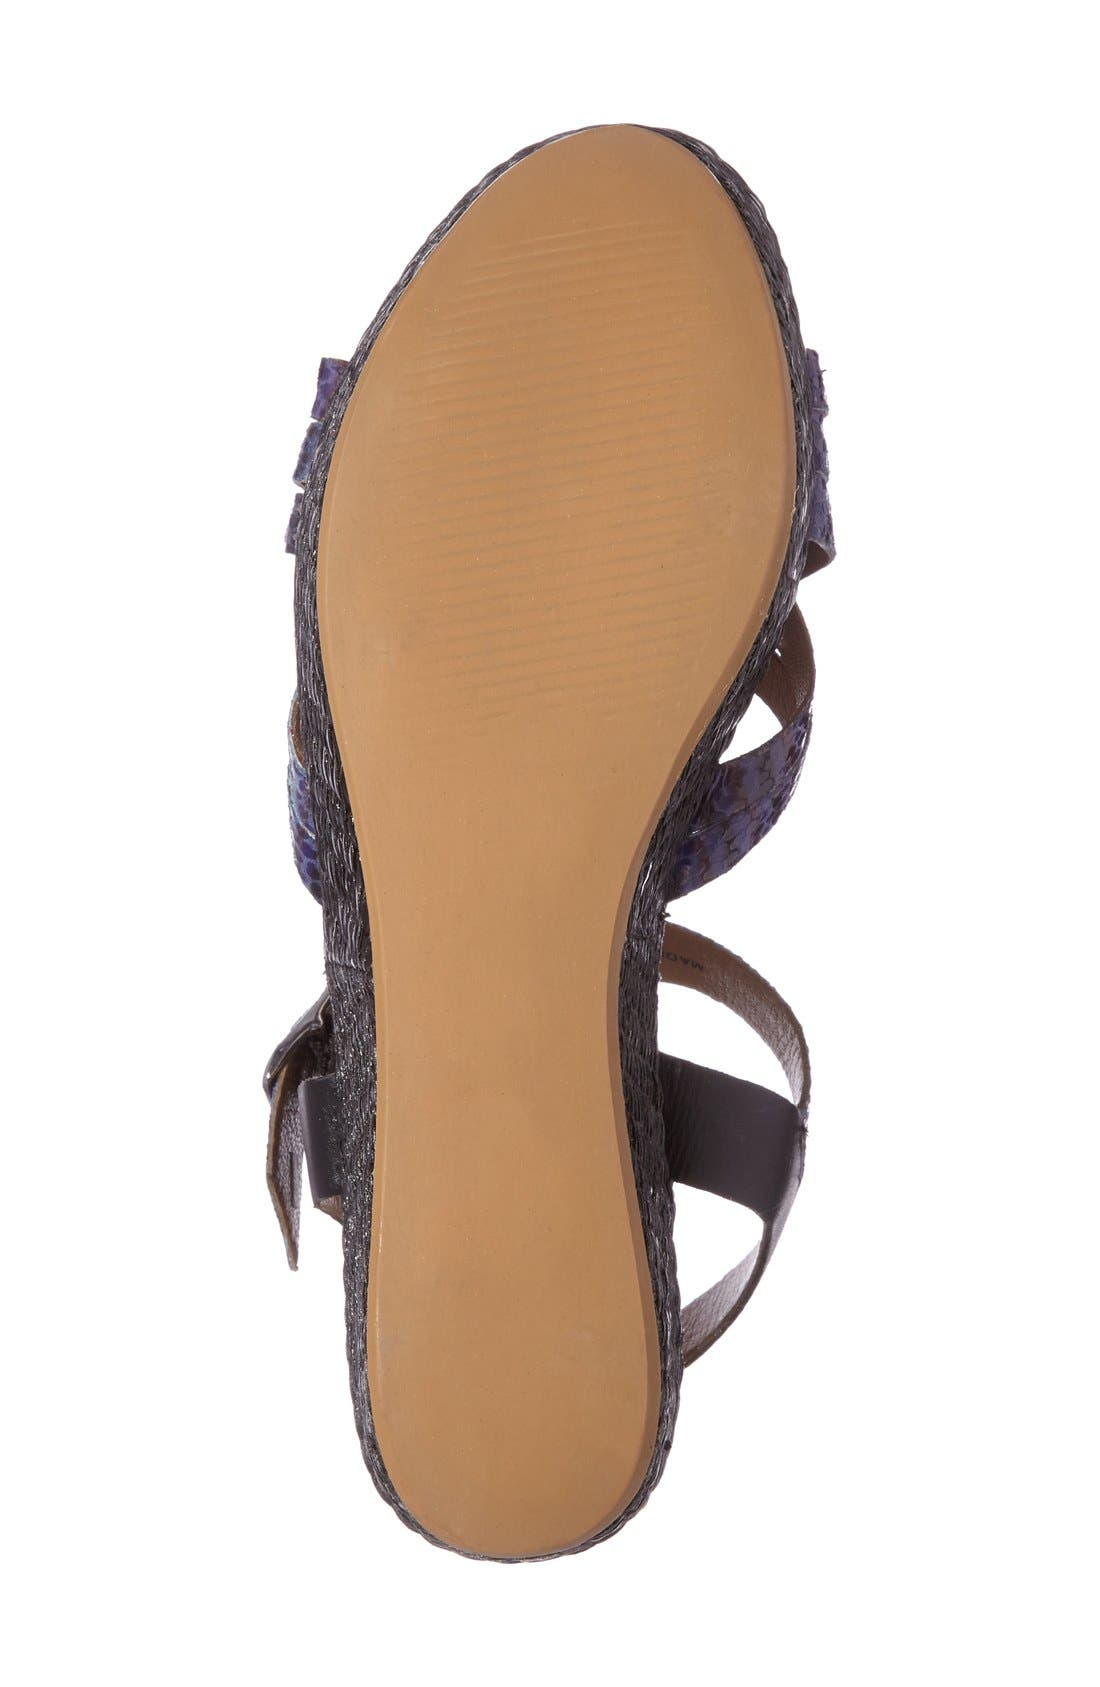 Valencia Platform Wedge Sandal,                             Alternate thumbnail 4, color,                             Blue Faux Leather